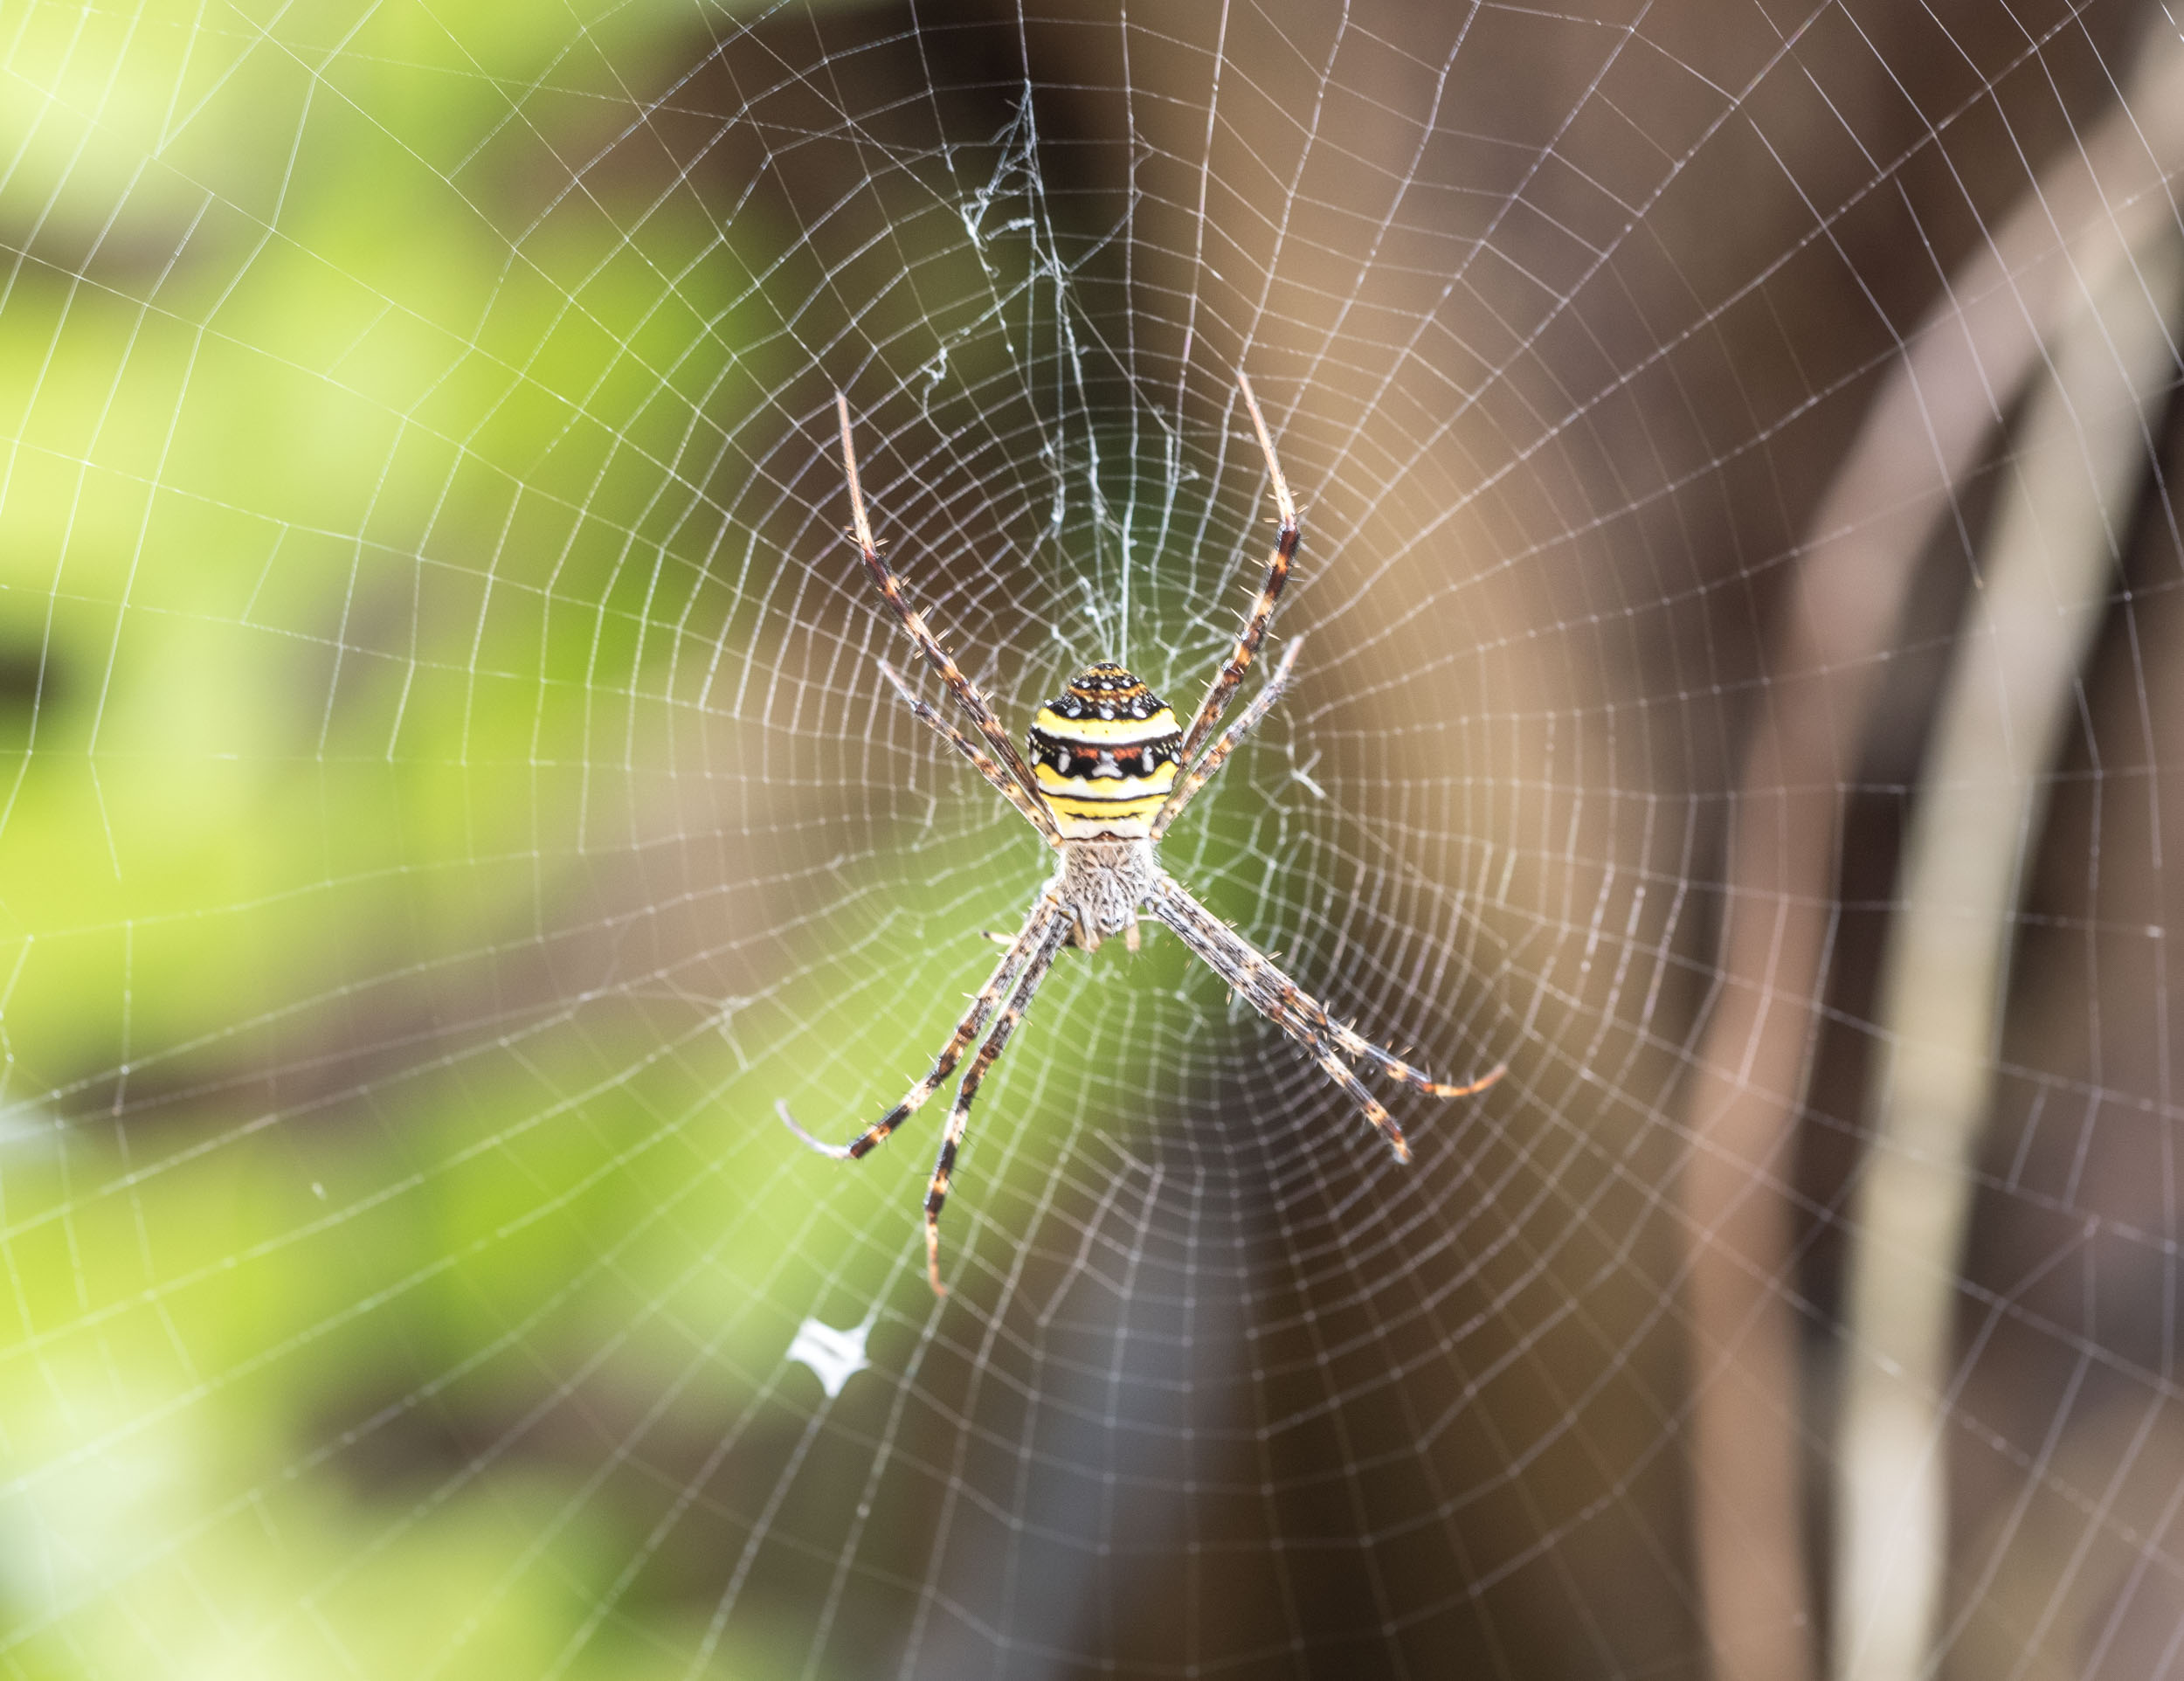 Pretty spider...... Built this web himself..... That's what he says anyway....